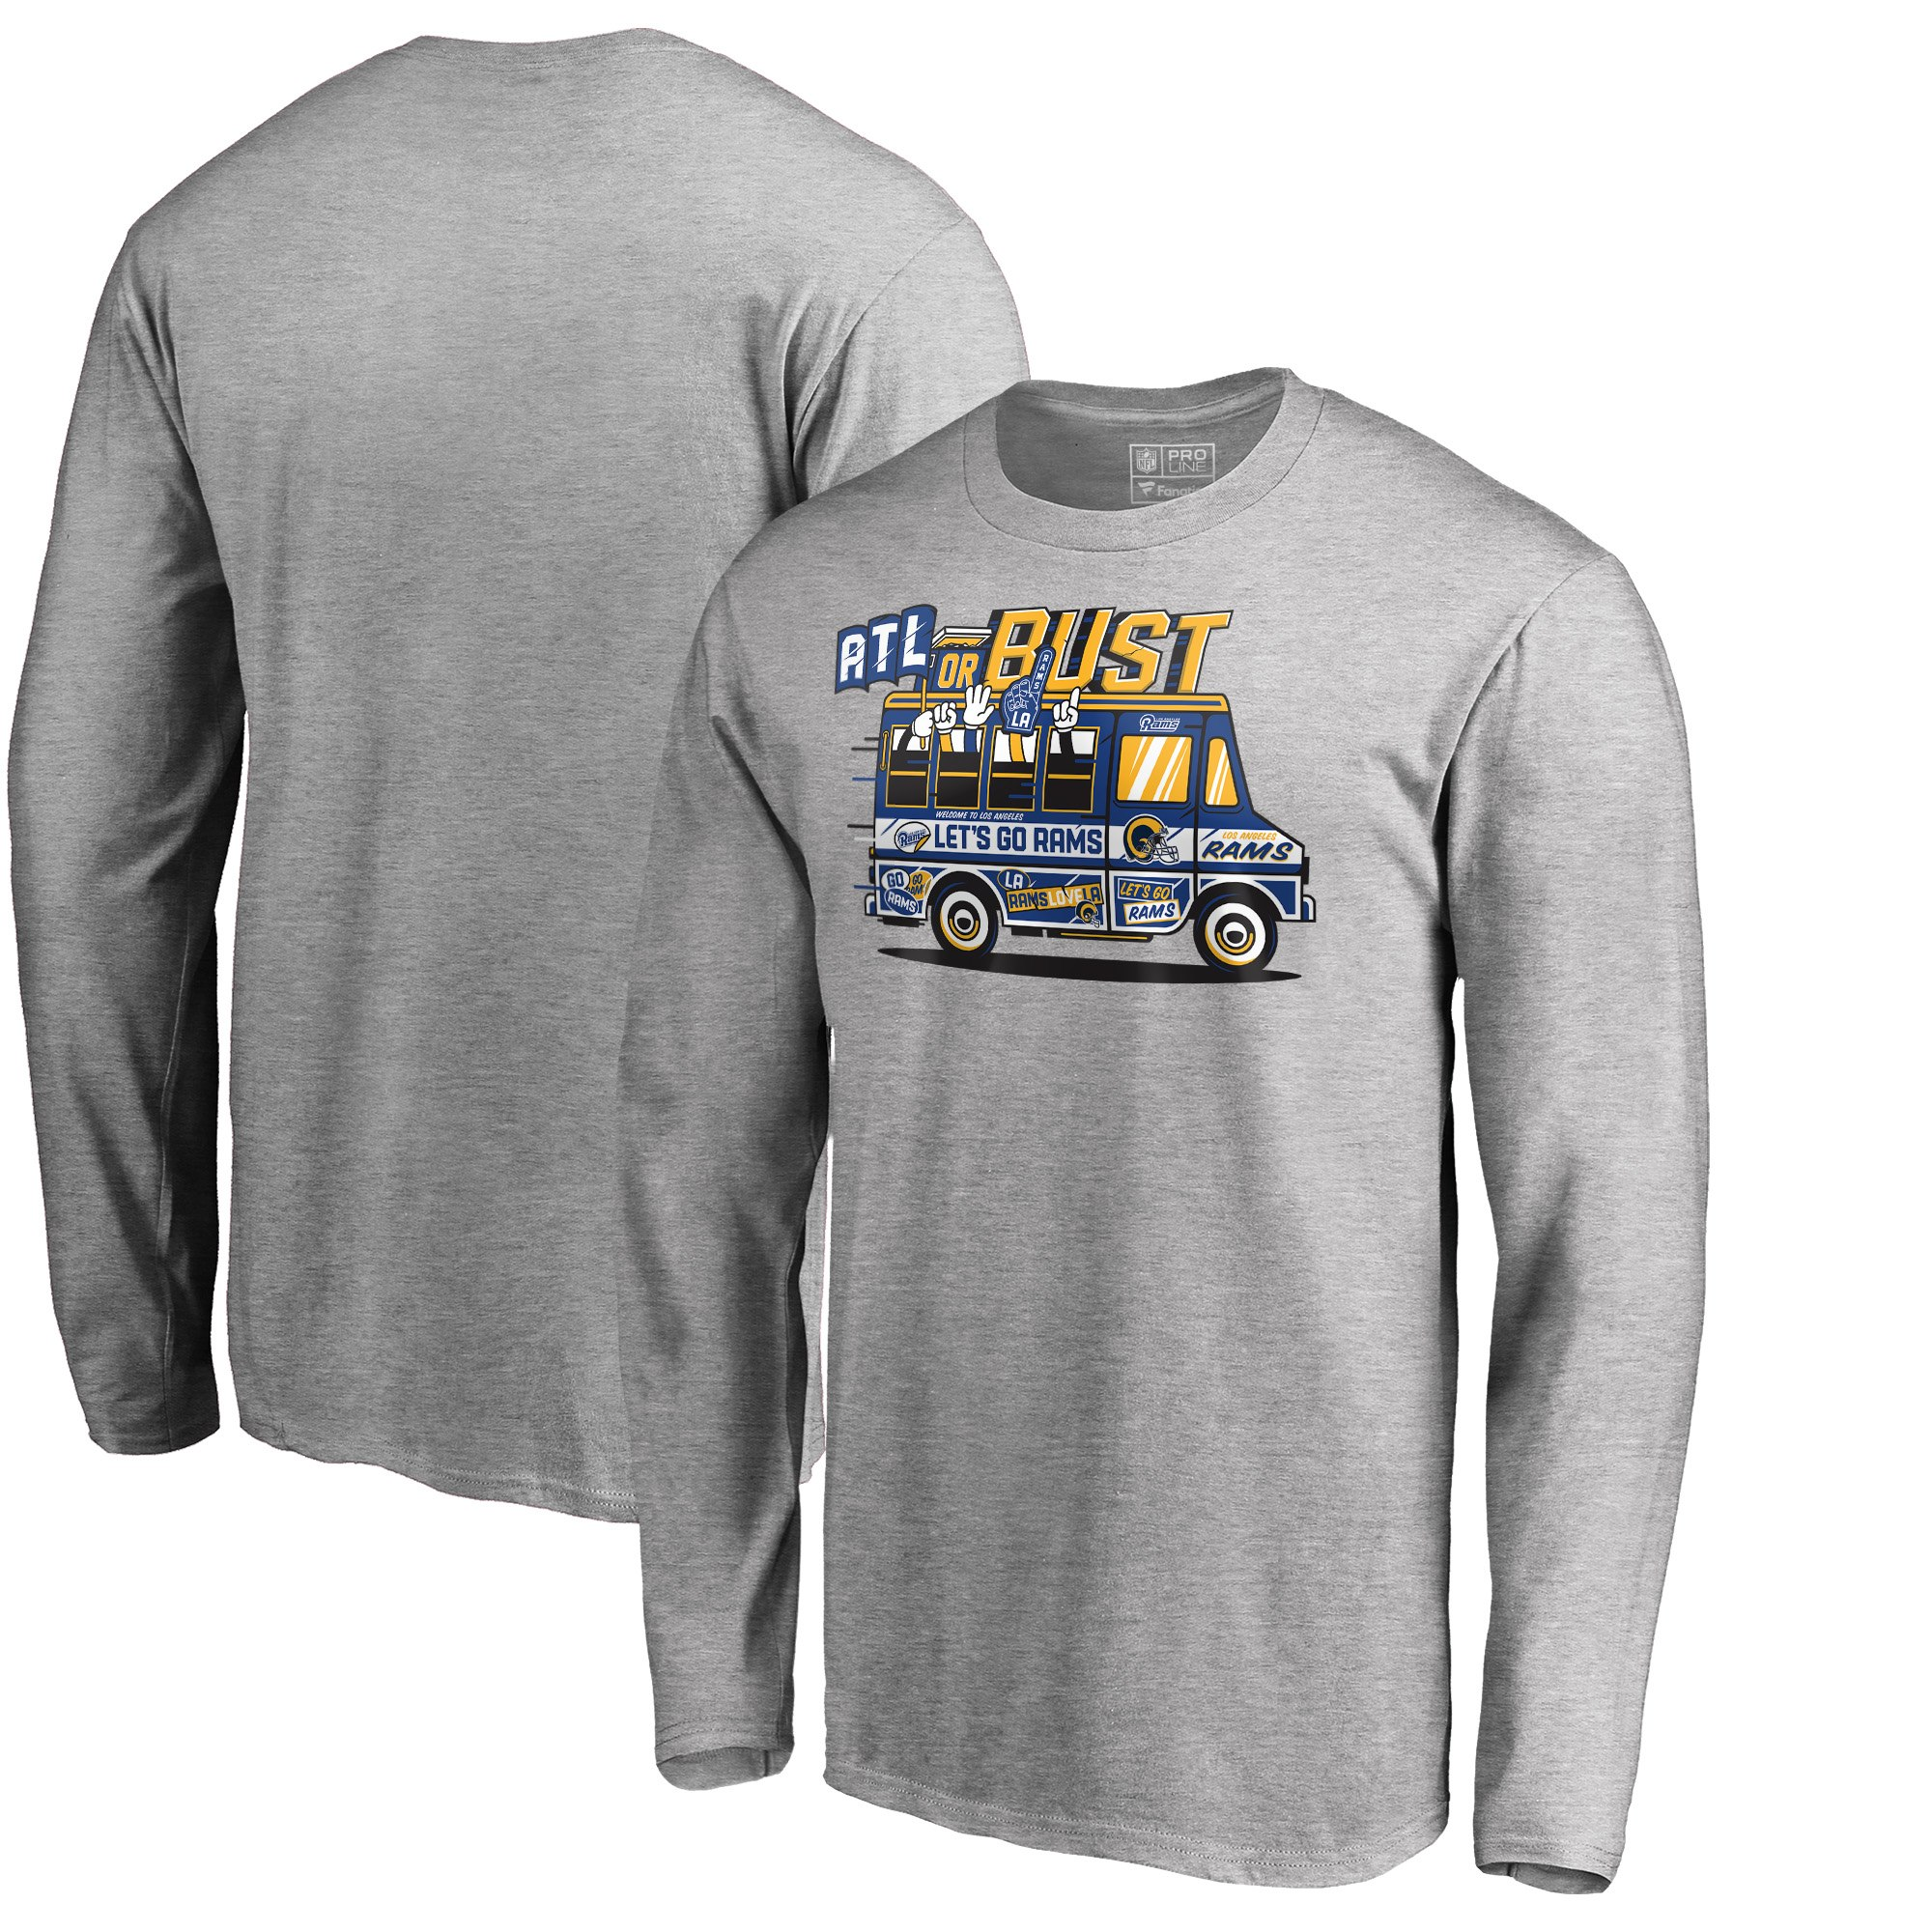 Los Angeles Rams NFL Pro Line by Fanatics Branded Super Bowl LIII Bound ATL Or Bust Long Sleeve T-Shirt Heather Gray